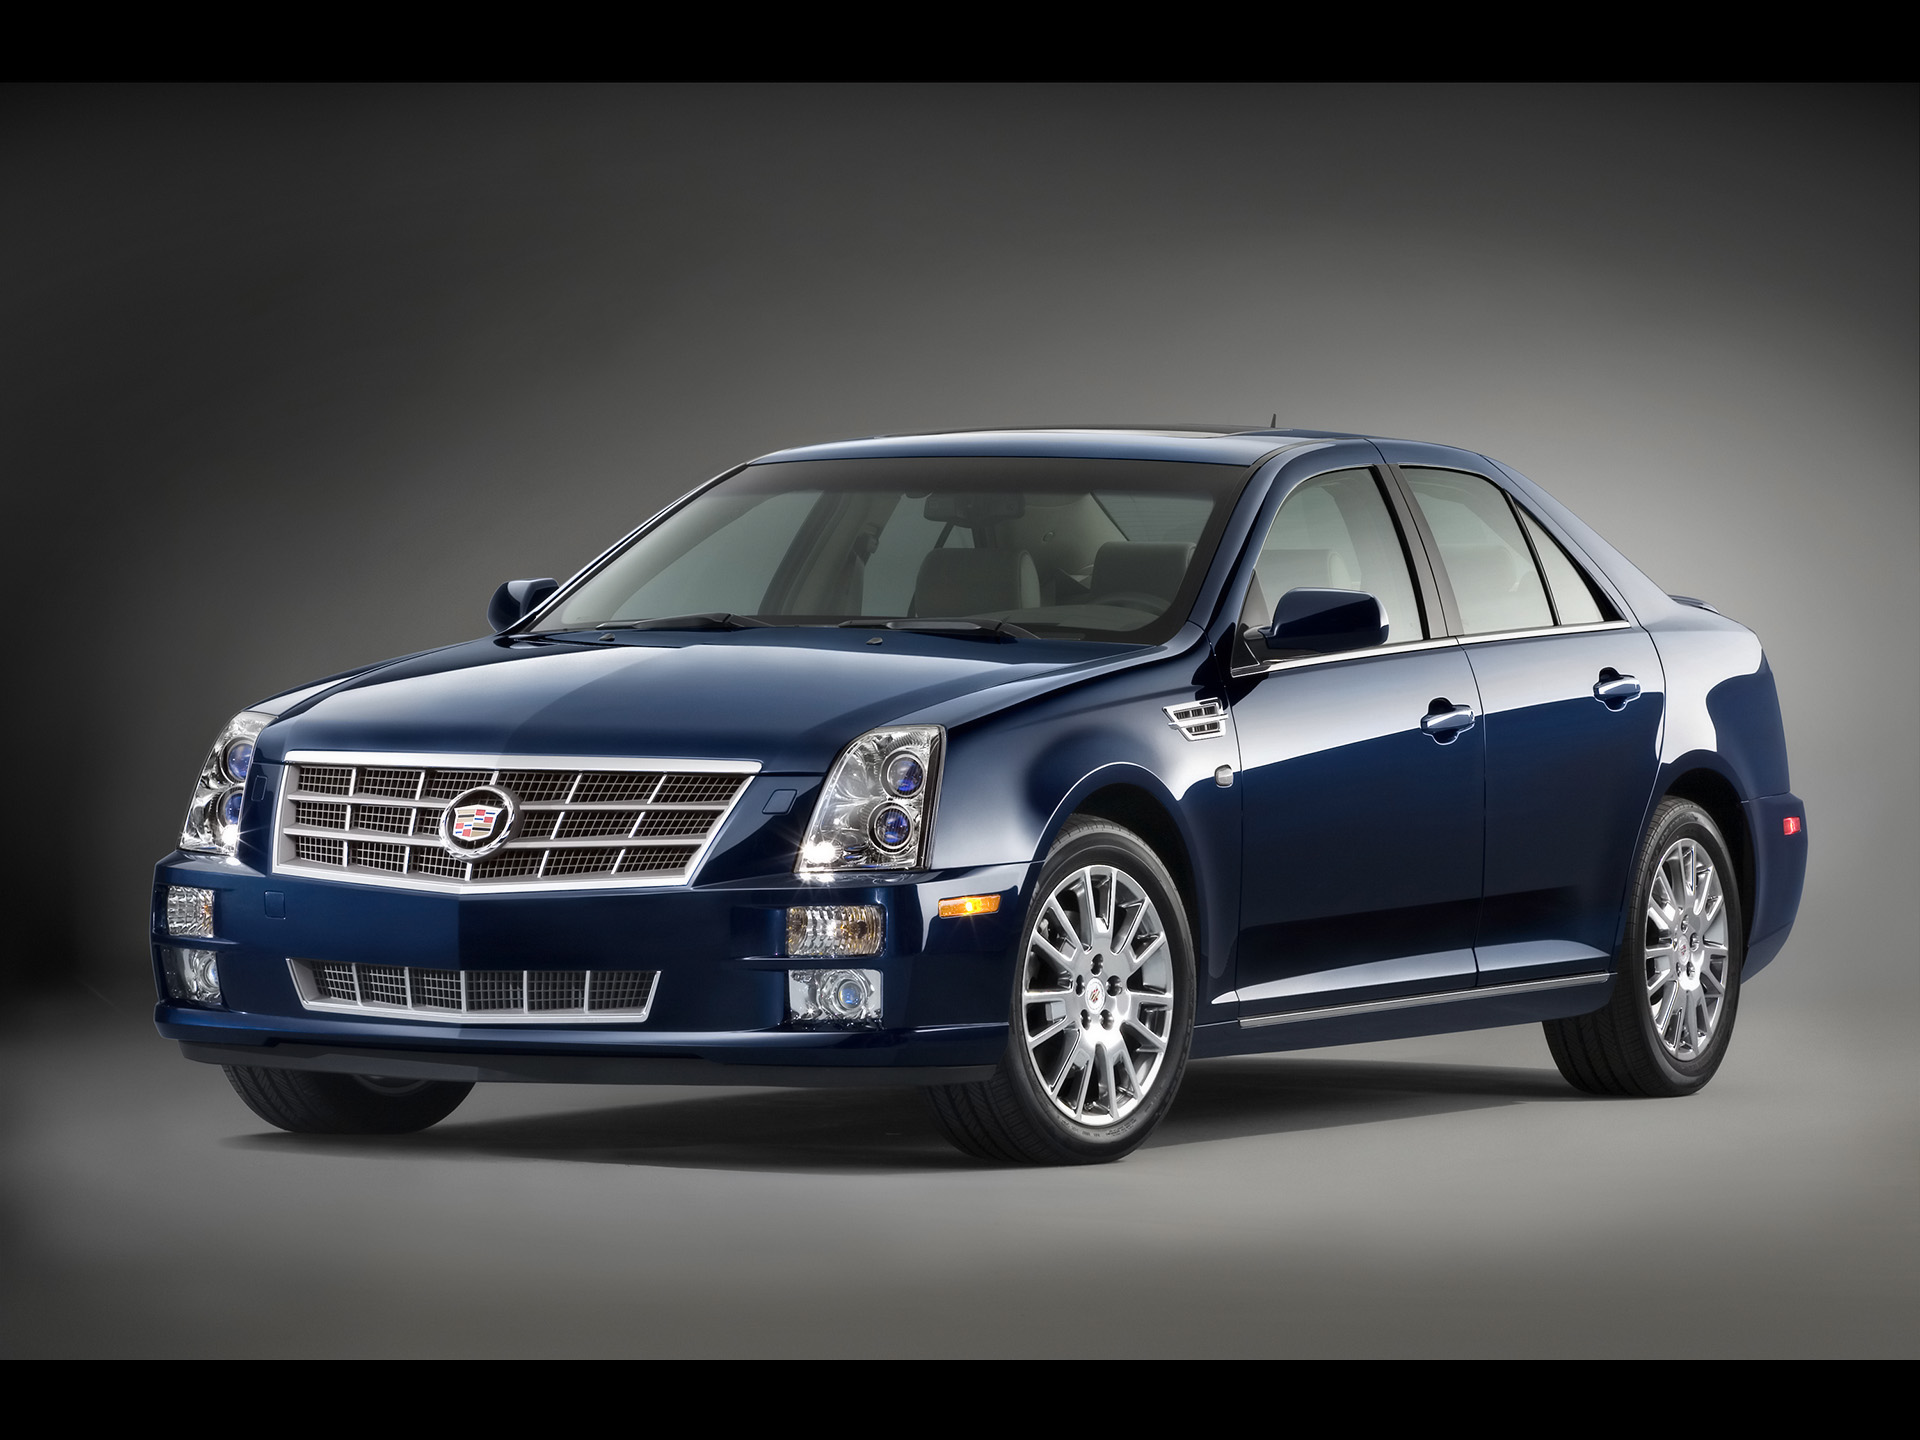 Photo of Cadillac STS Wallpapers HD